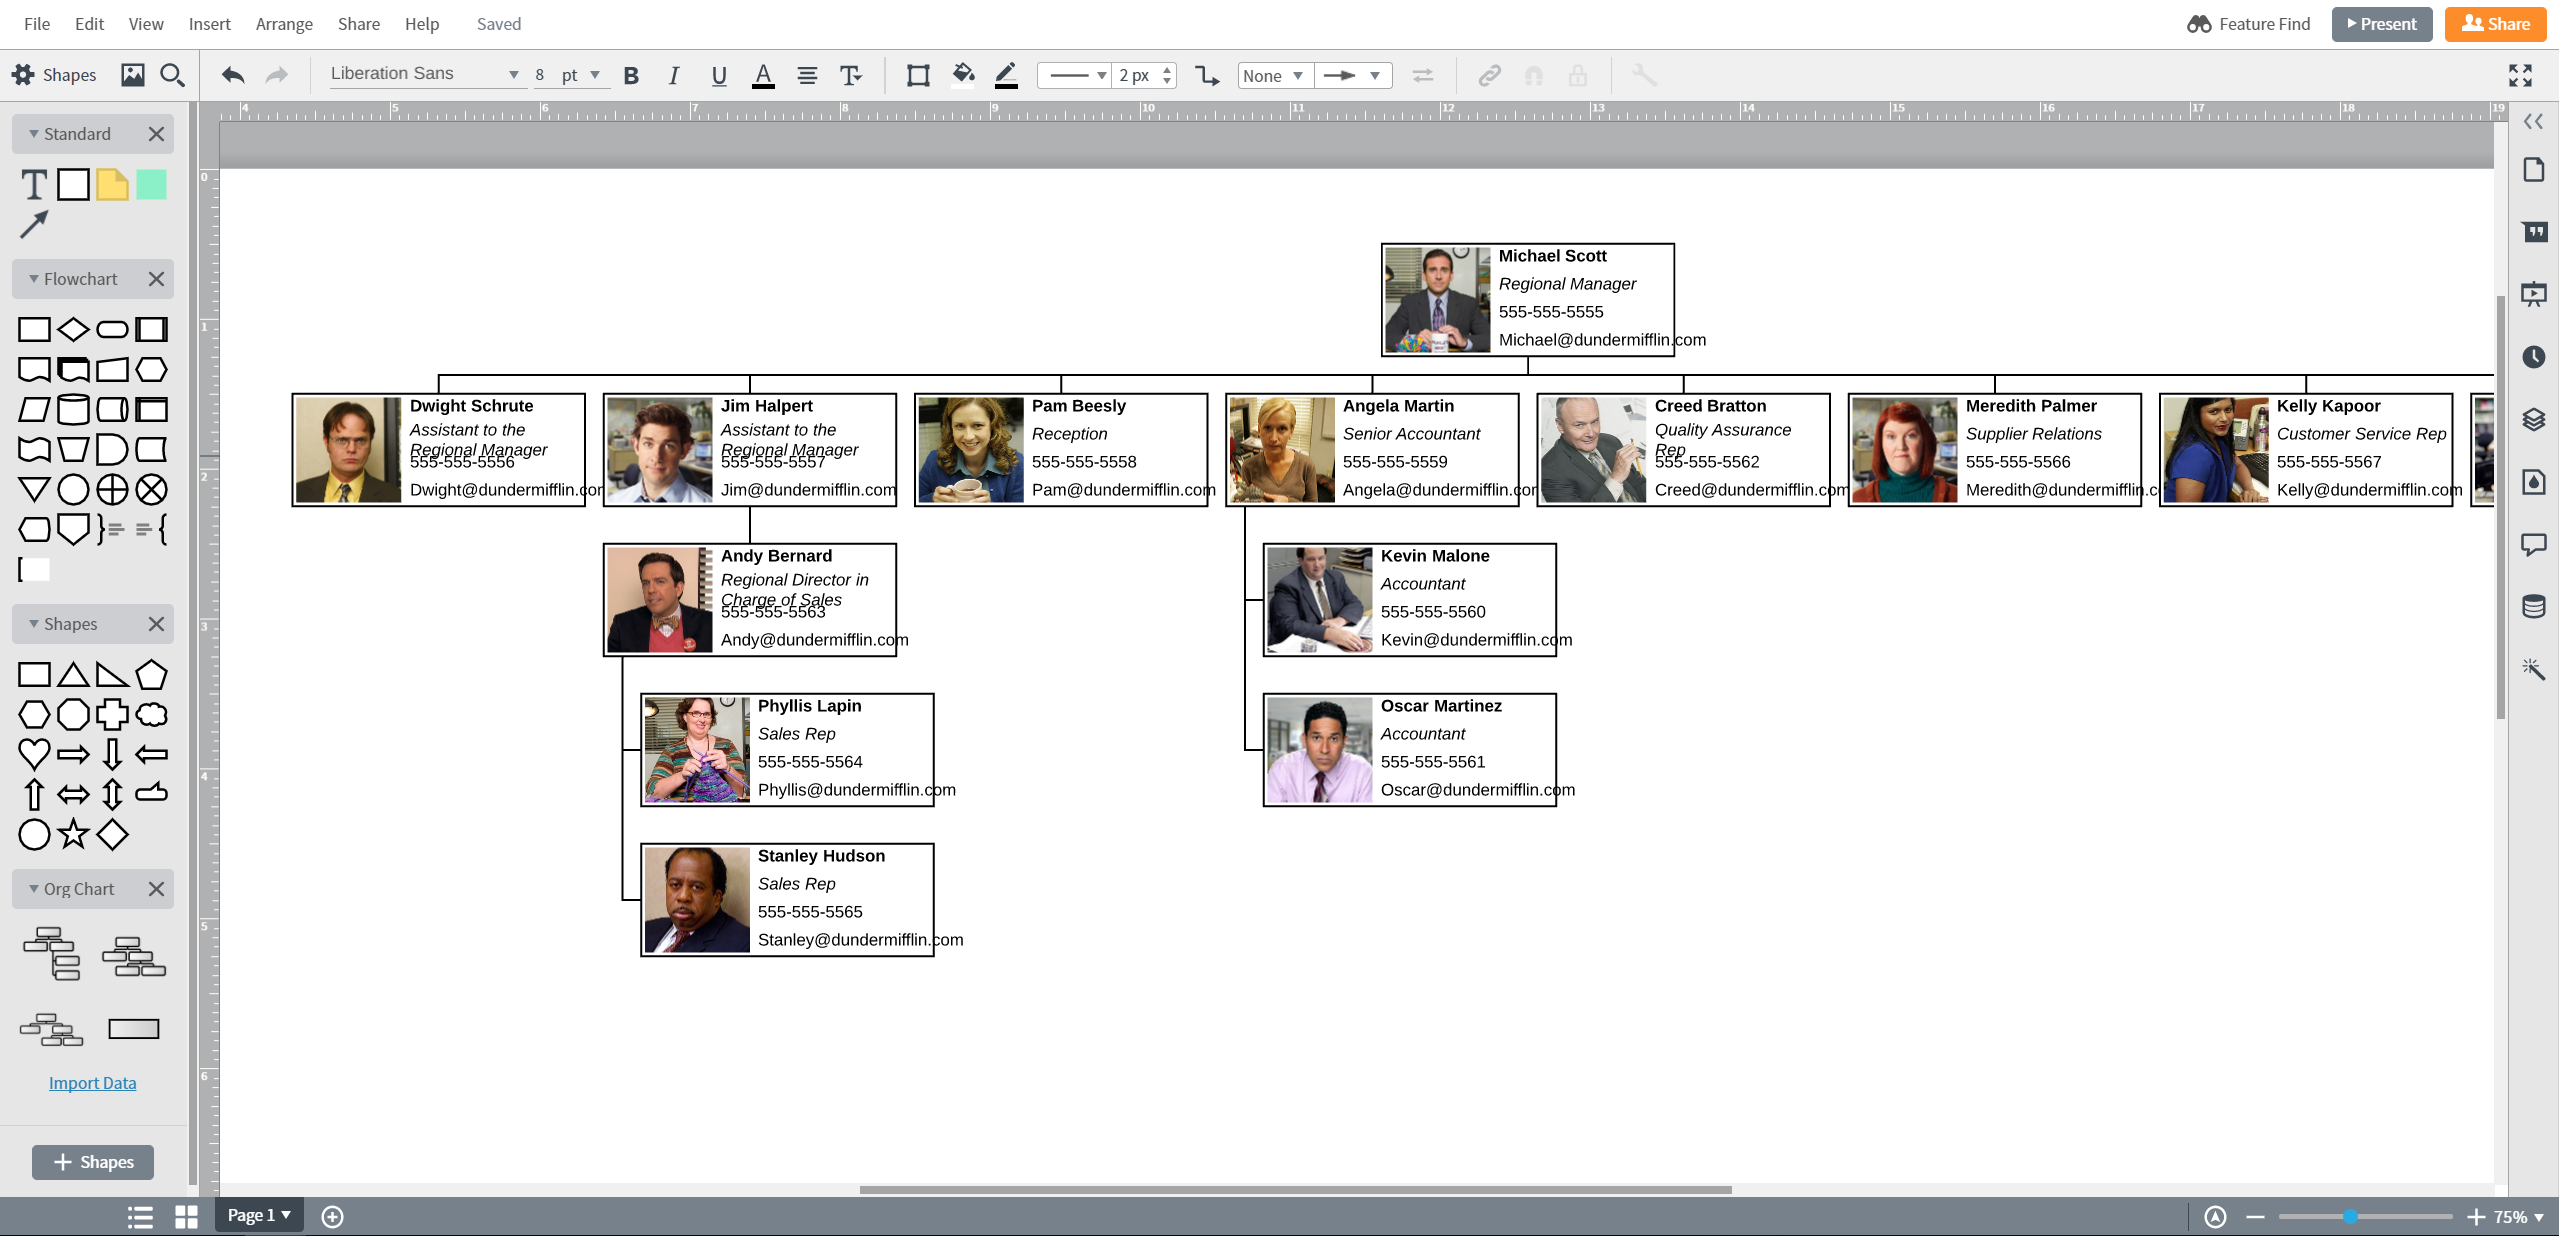 How to make an org chart in powerpoint lucidchart how to make an org chart in powerpoint imported org chart in lucidchart toneelgroepblik Images